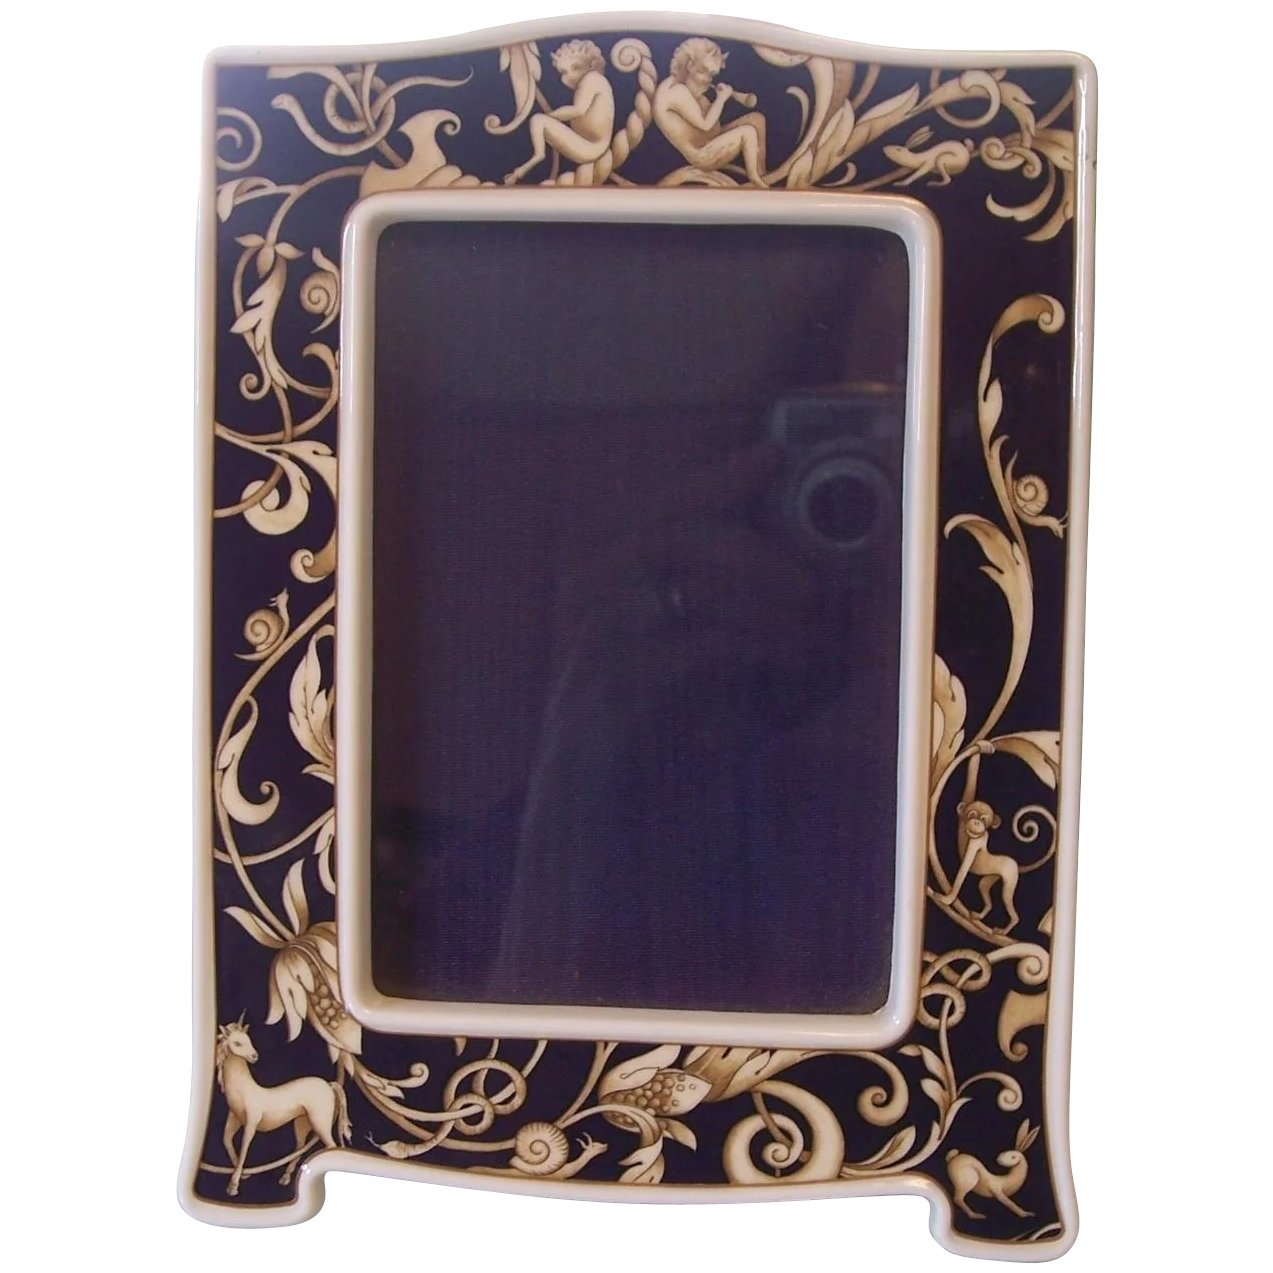 Wedgwood bone china cornucopia picture frame modseller ruby lane wedgwood bone china cornucopia picture frame click to expand jeuxipadfo Image collections